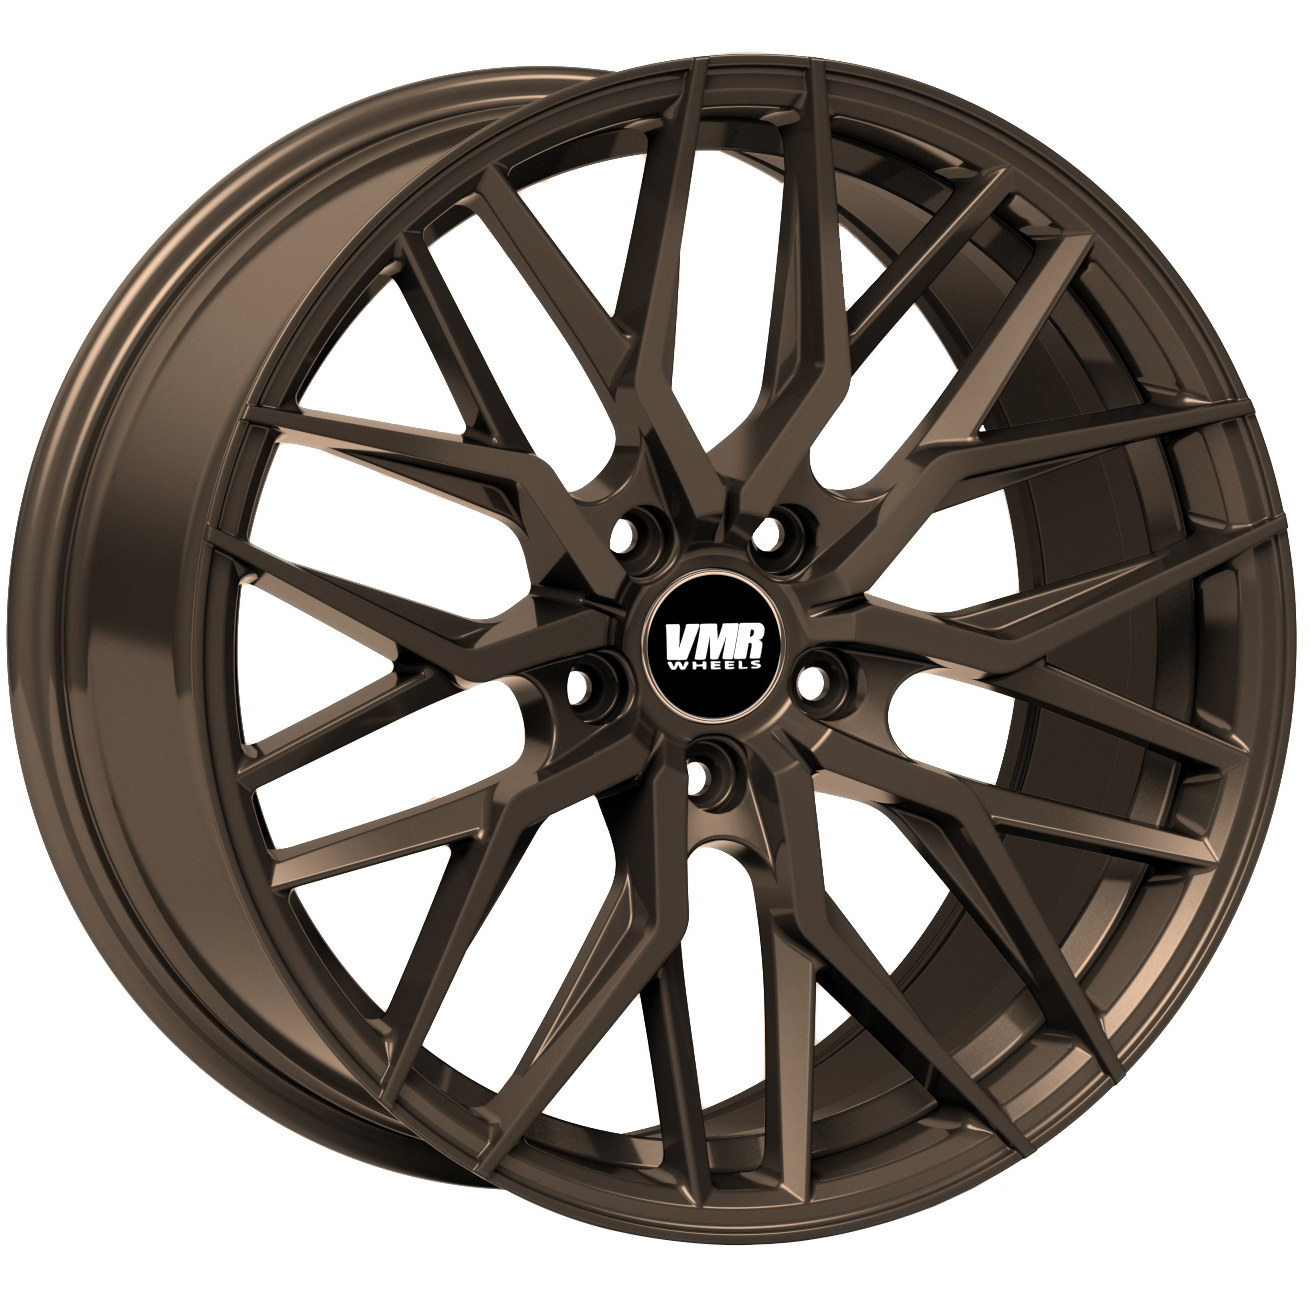 VMR Standard Finish Matte Bronze